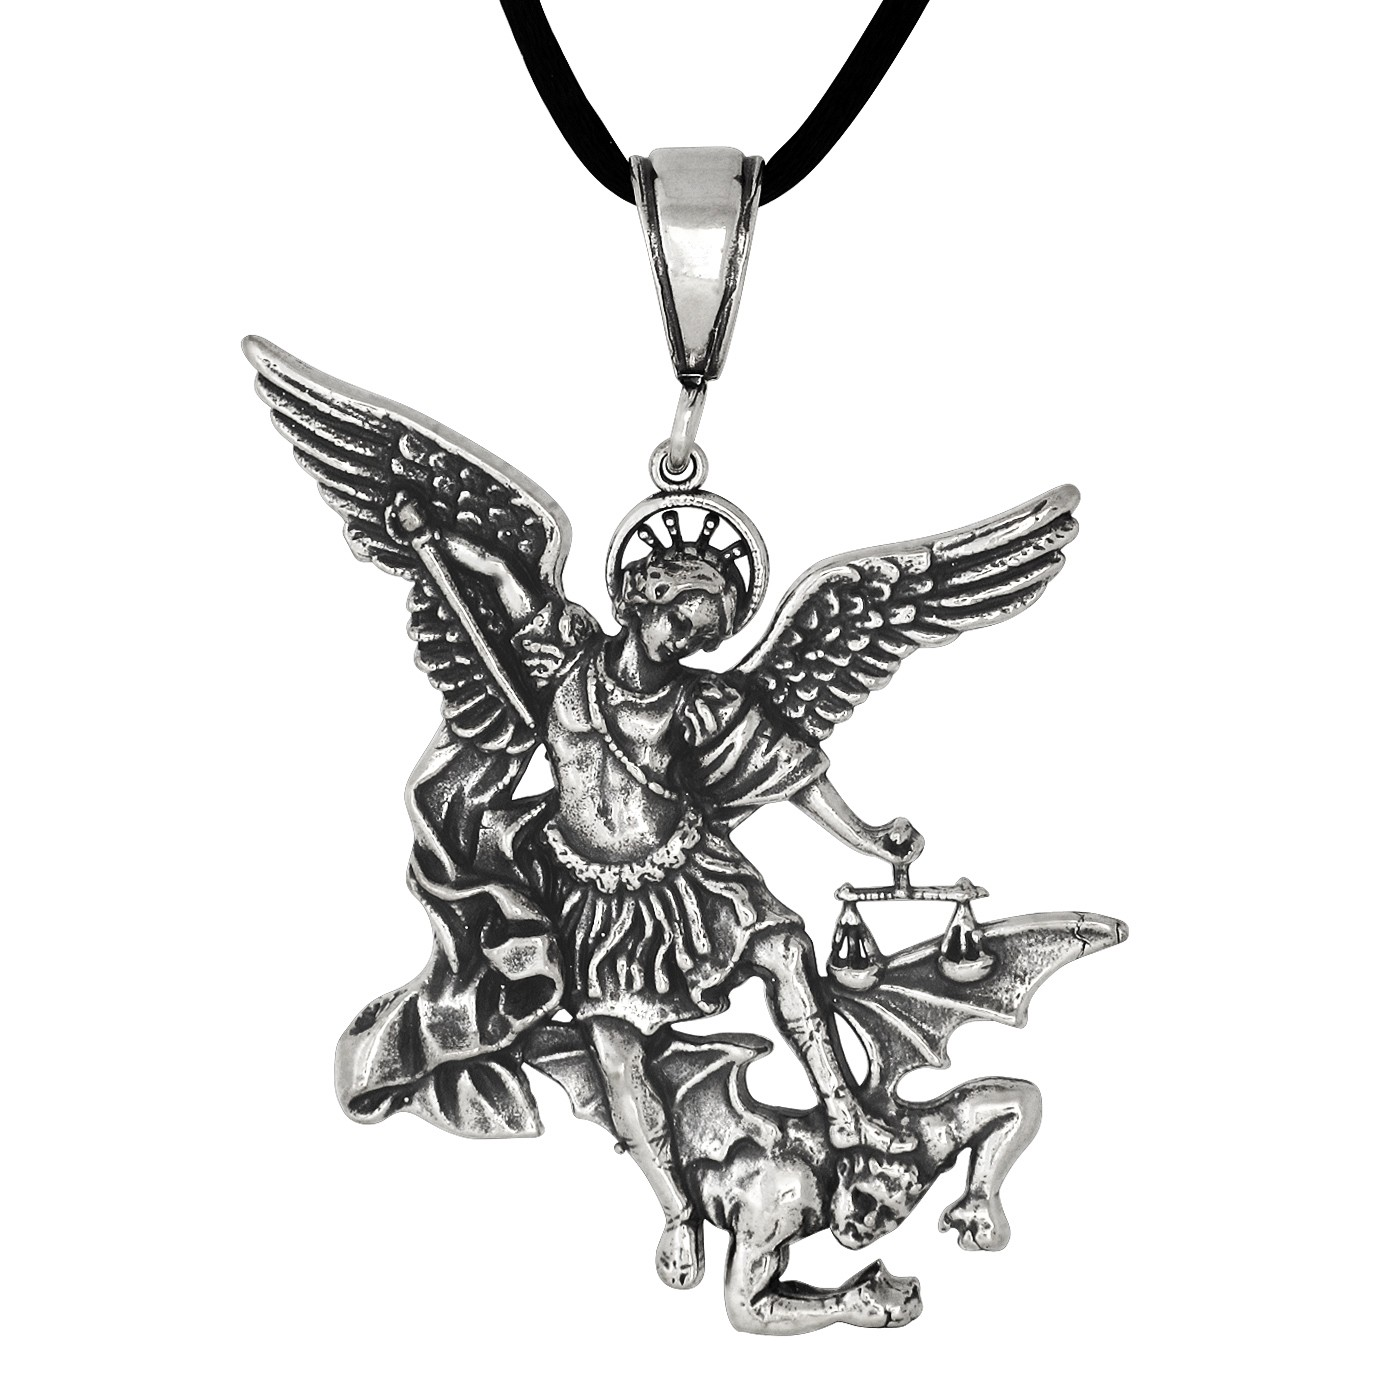 St michael the archangel drawing at getdrawings free for 1400x1400 sterling silver oxidized saint michael archangel pendant necklace aloadofball Images